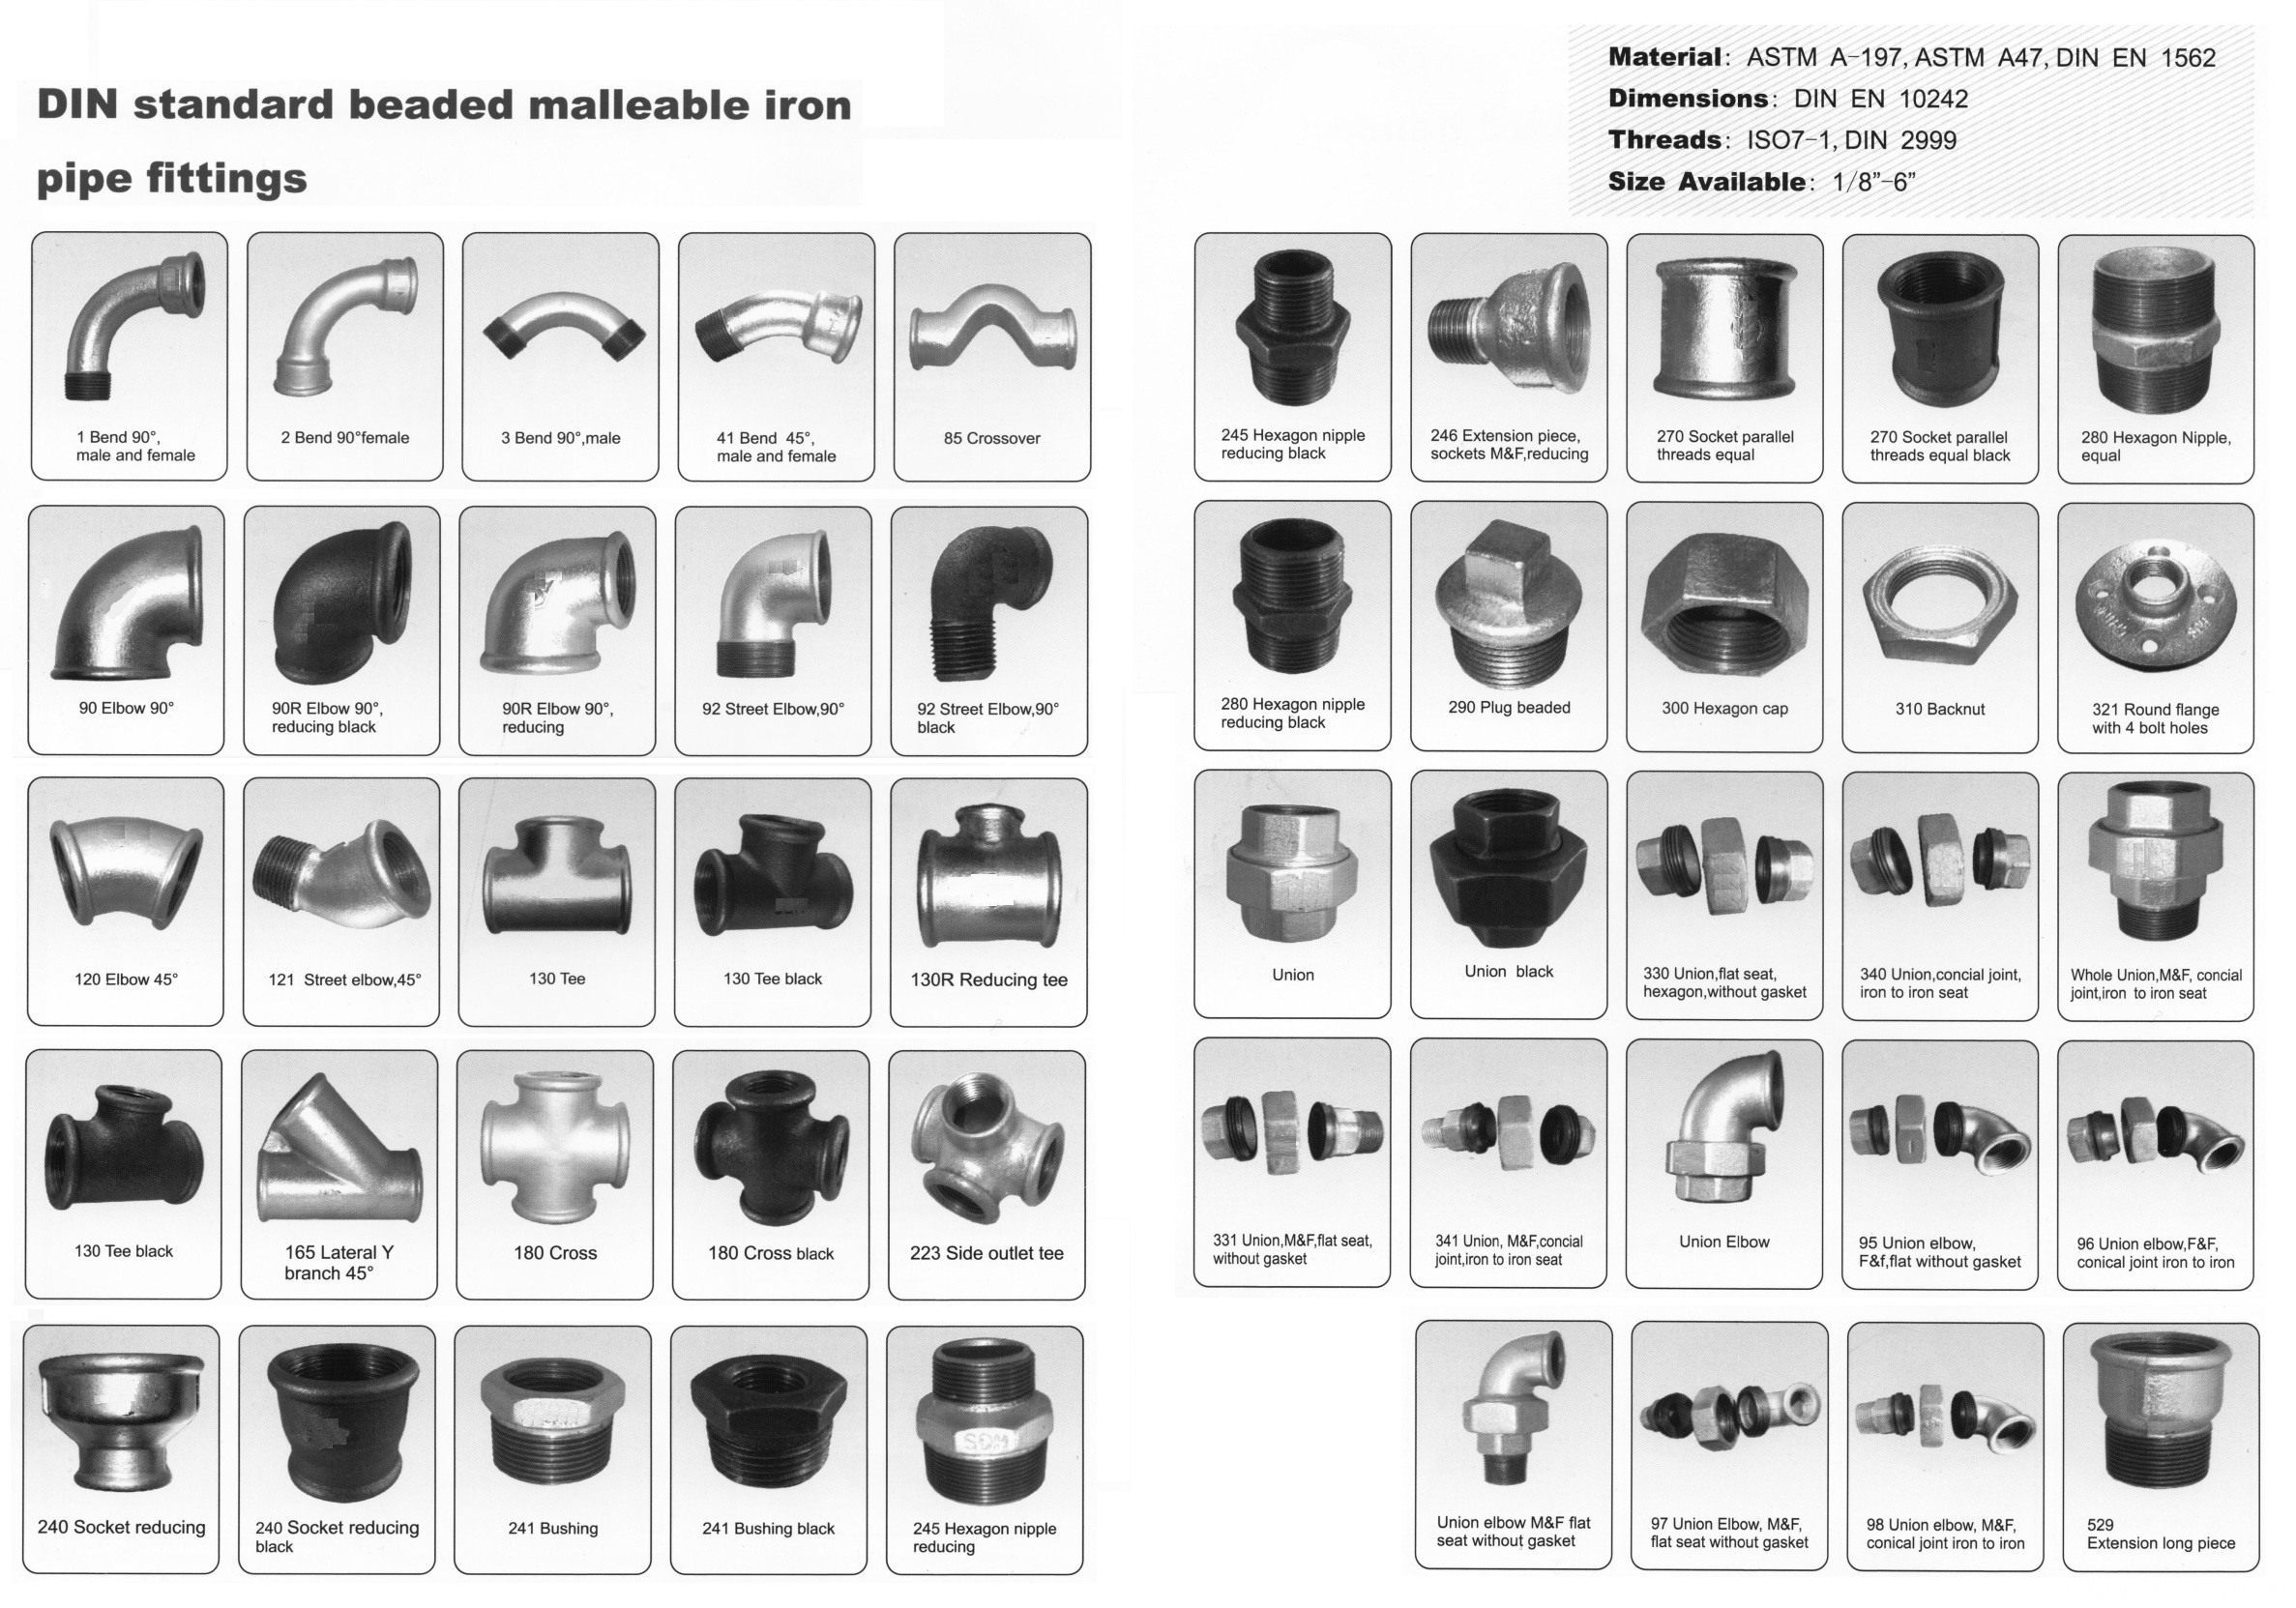 Beaded type malleable iron iron pipe fittings